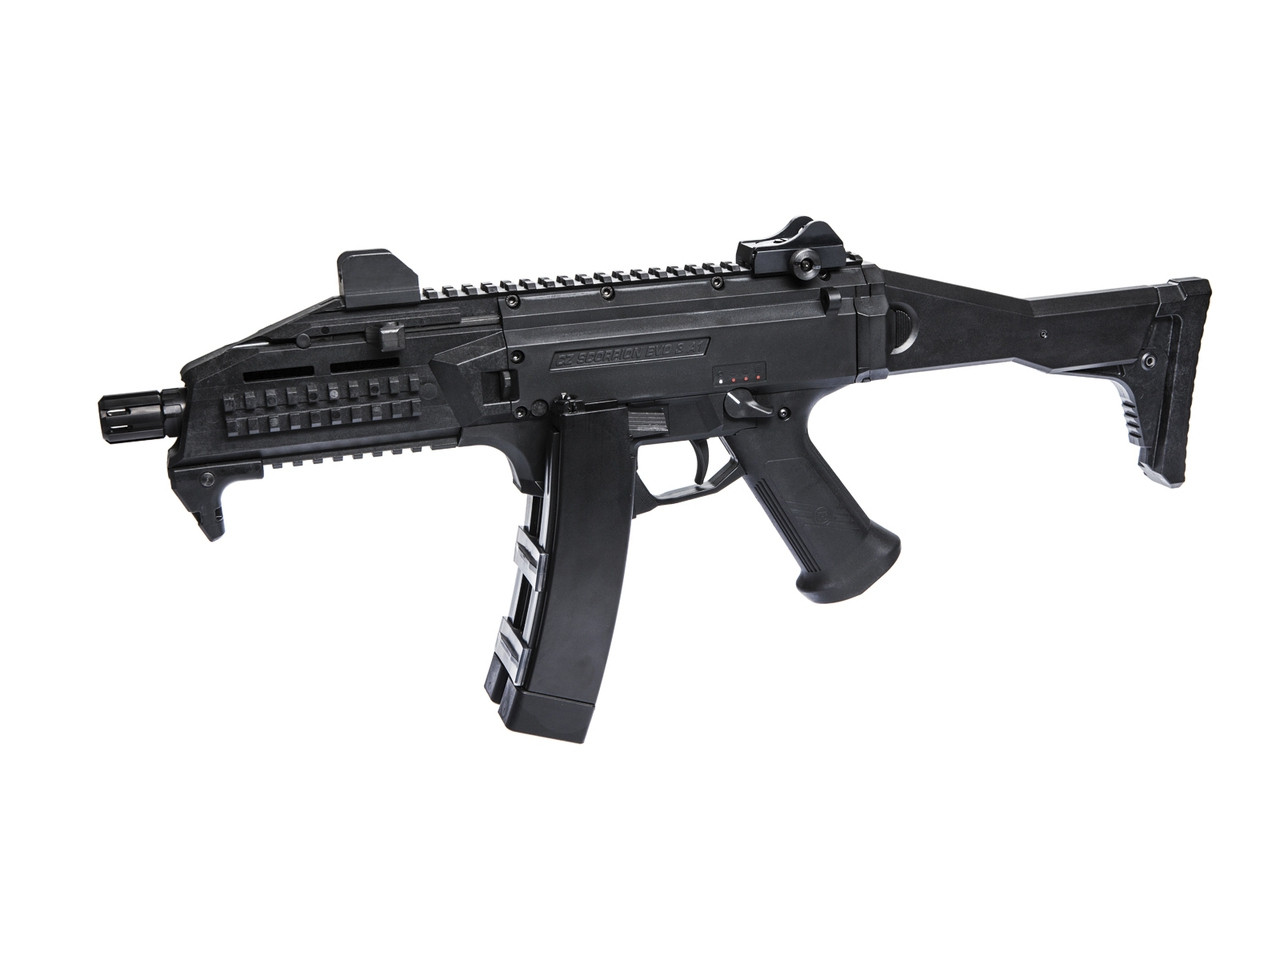 SMG AEGs